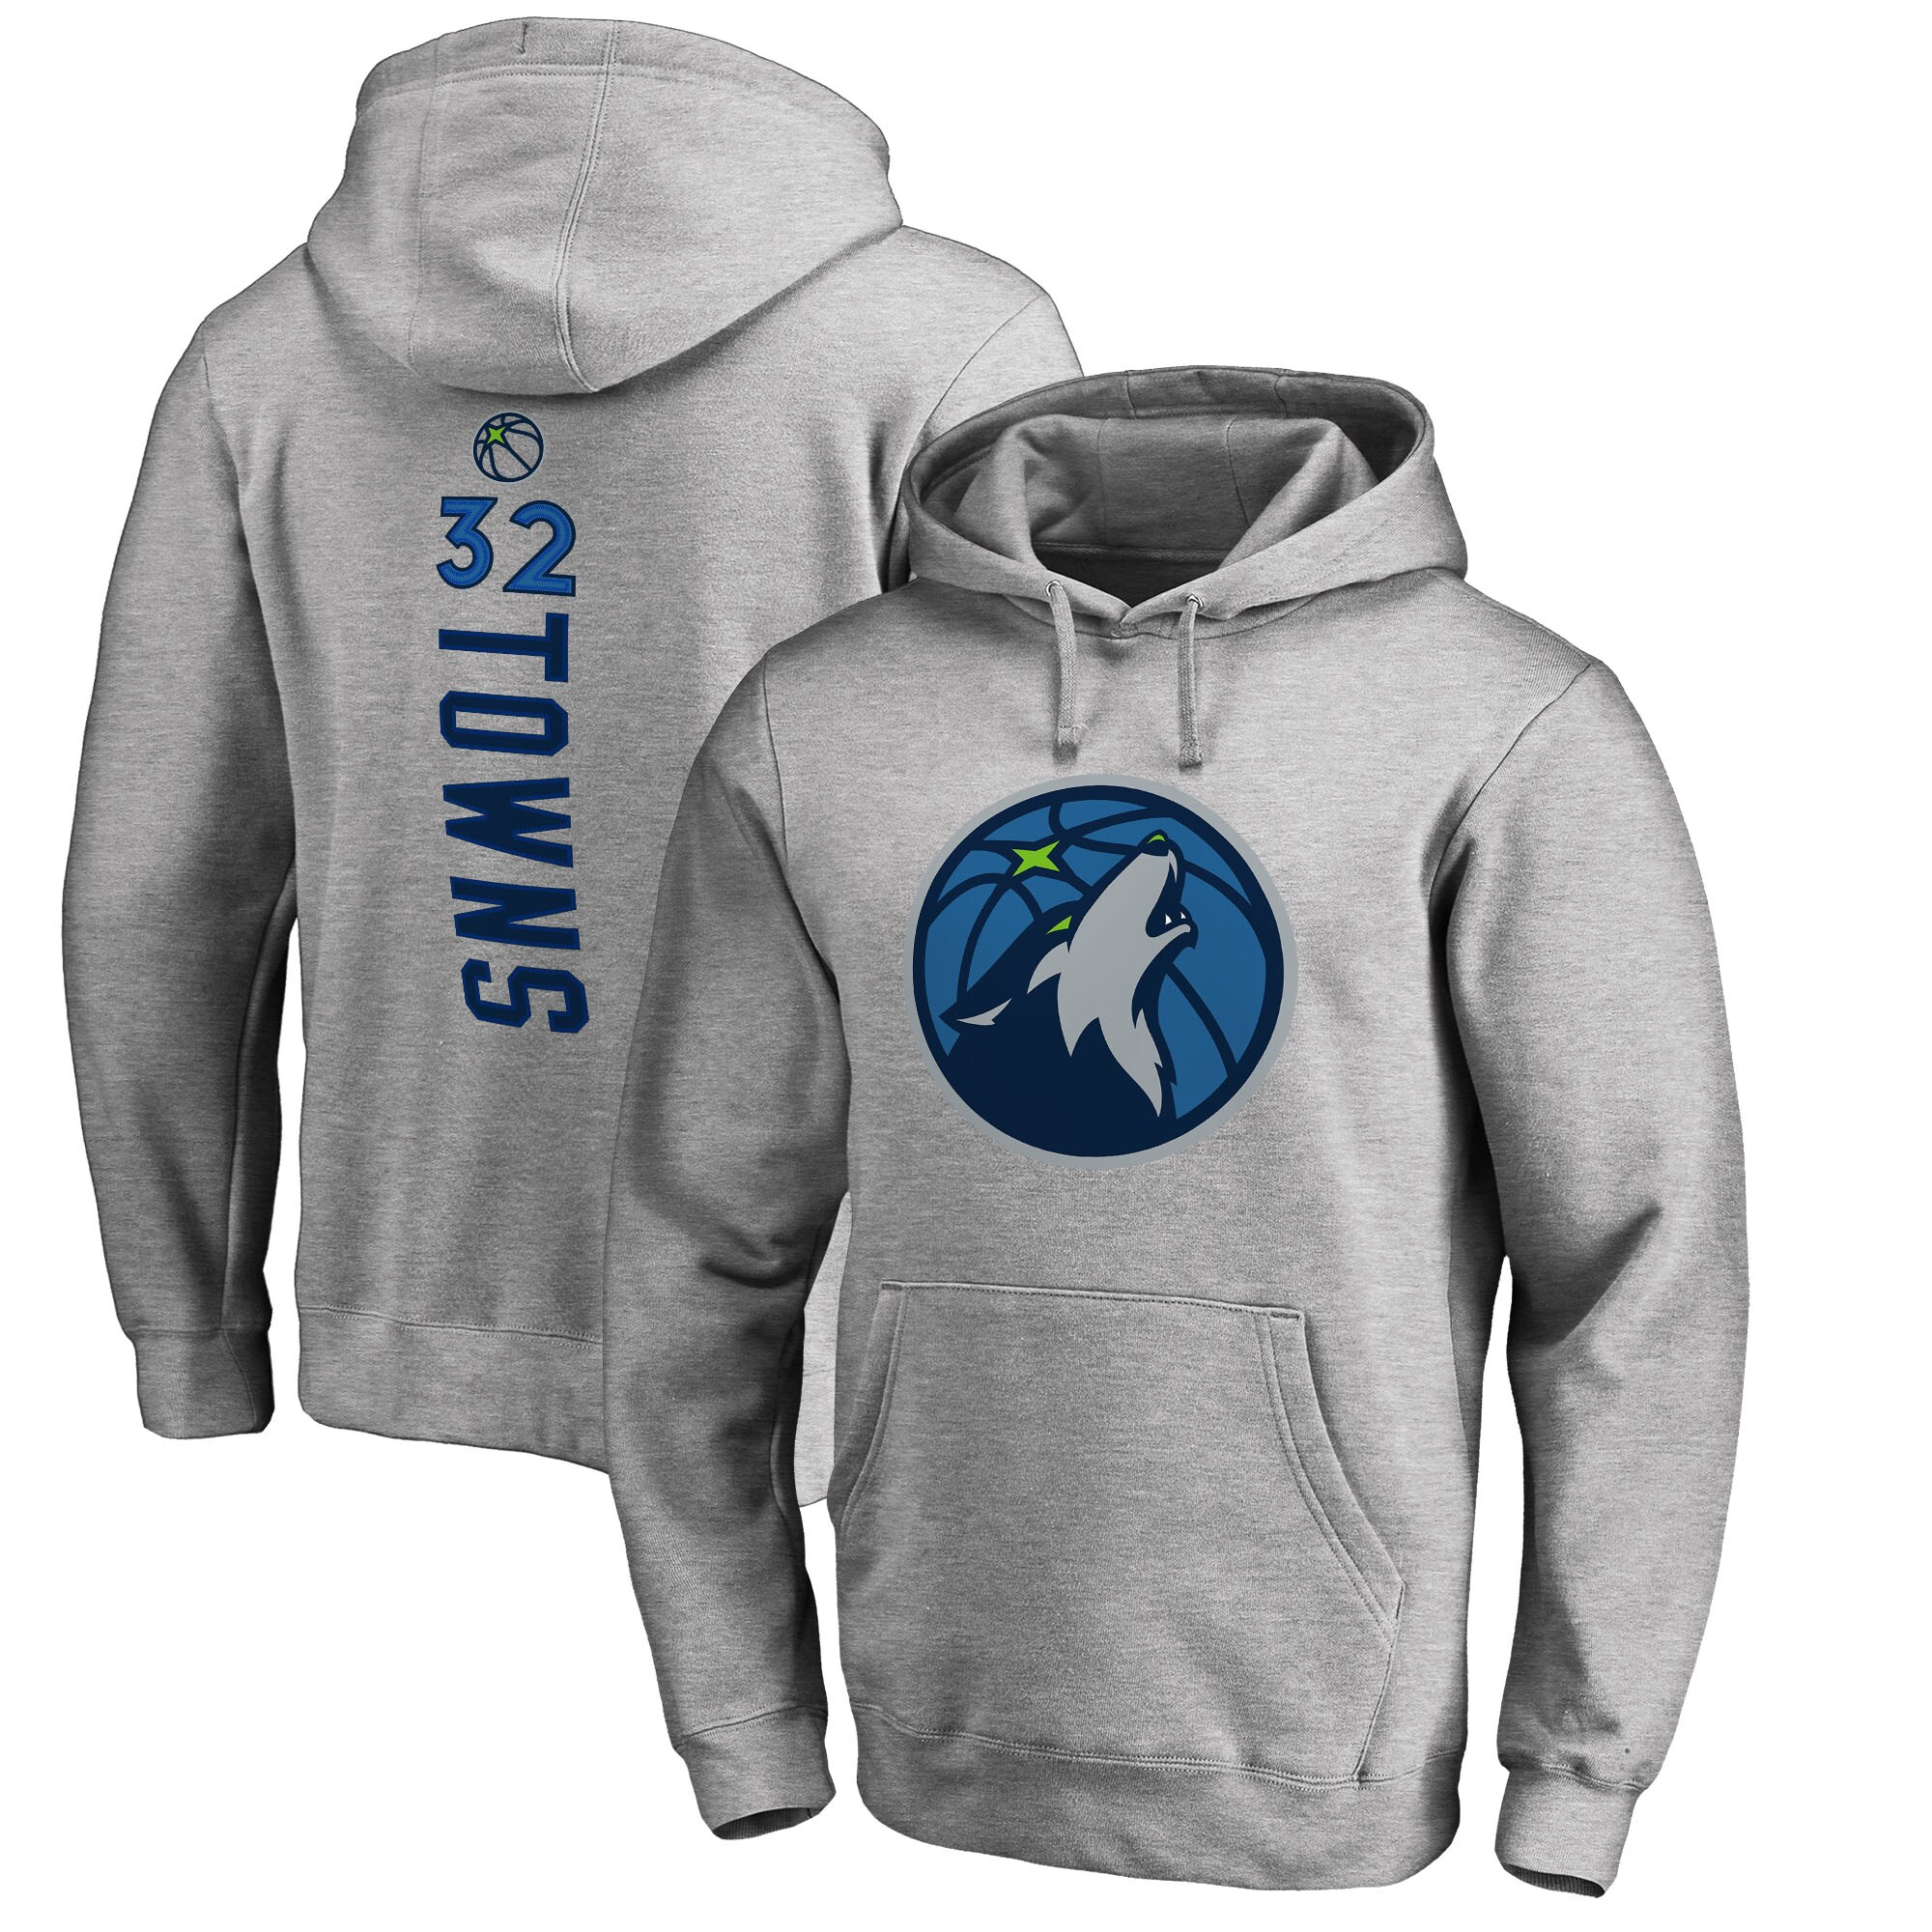 Karl-Anthony Towns Minnesota Timberwolves Fanatics Branded Backer Name & Number Pullover Hoodie - Gray